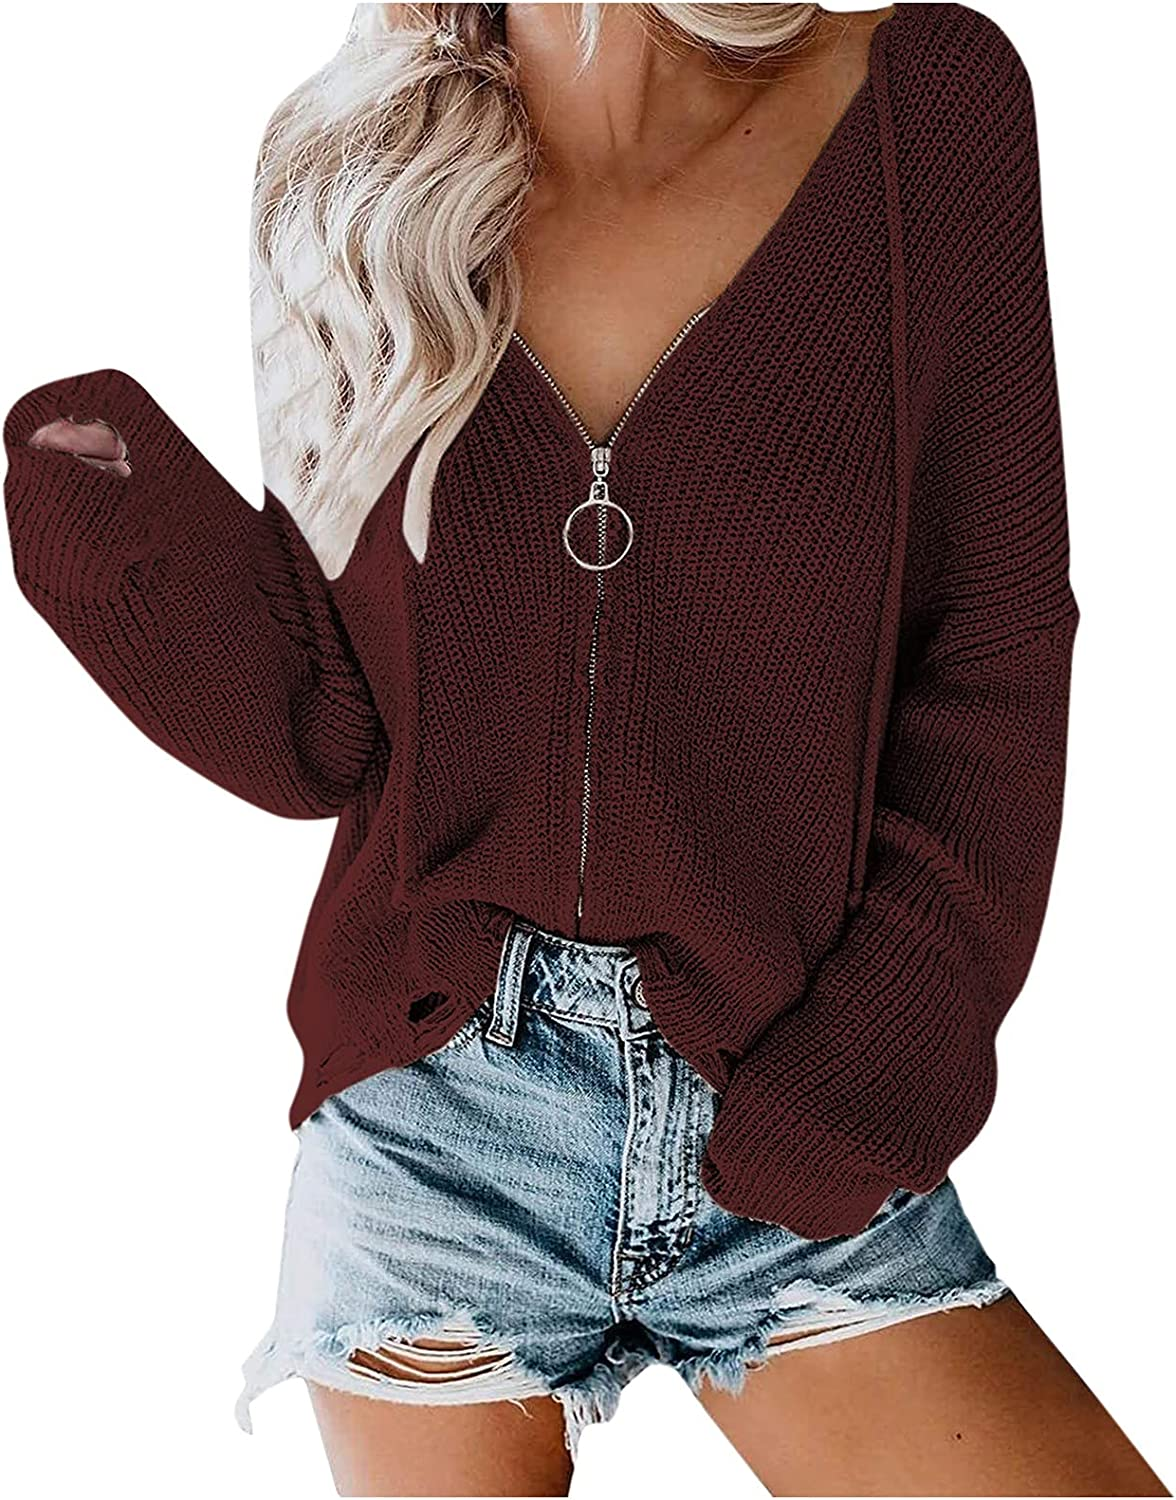 Hoodies Women Pullover San Francisco Mall Oversized Sweaters Vintage Cute Jackets C Limited time cheap sale